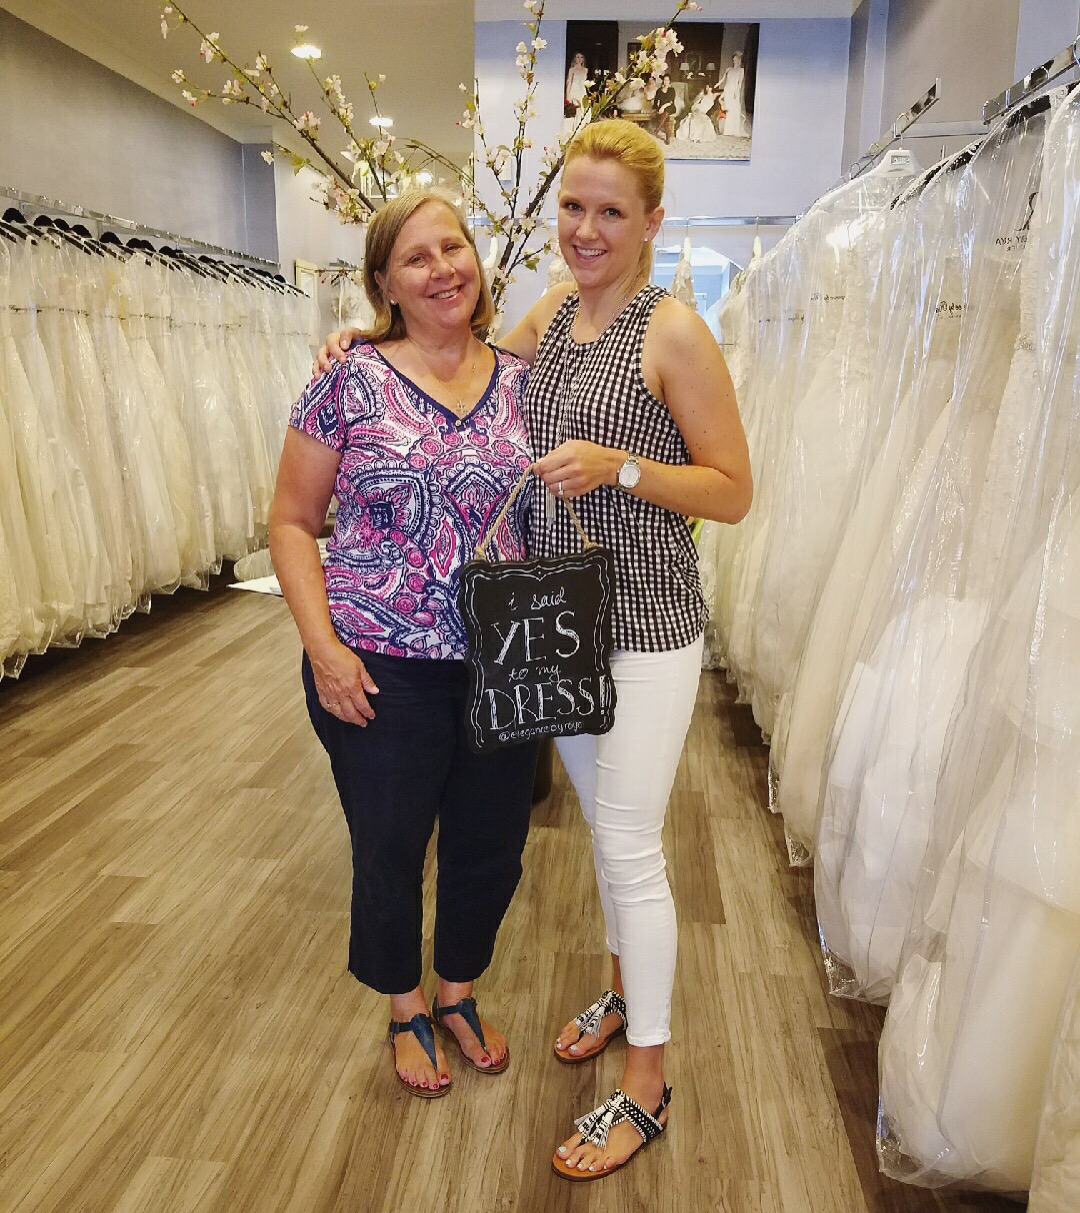 My mom and I celebrated the end of the wedding dress selection processs.